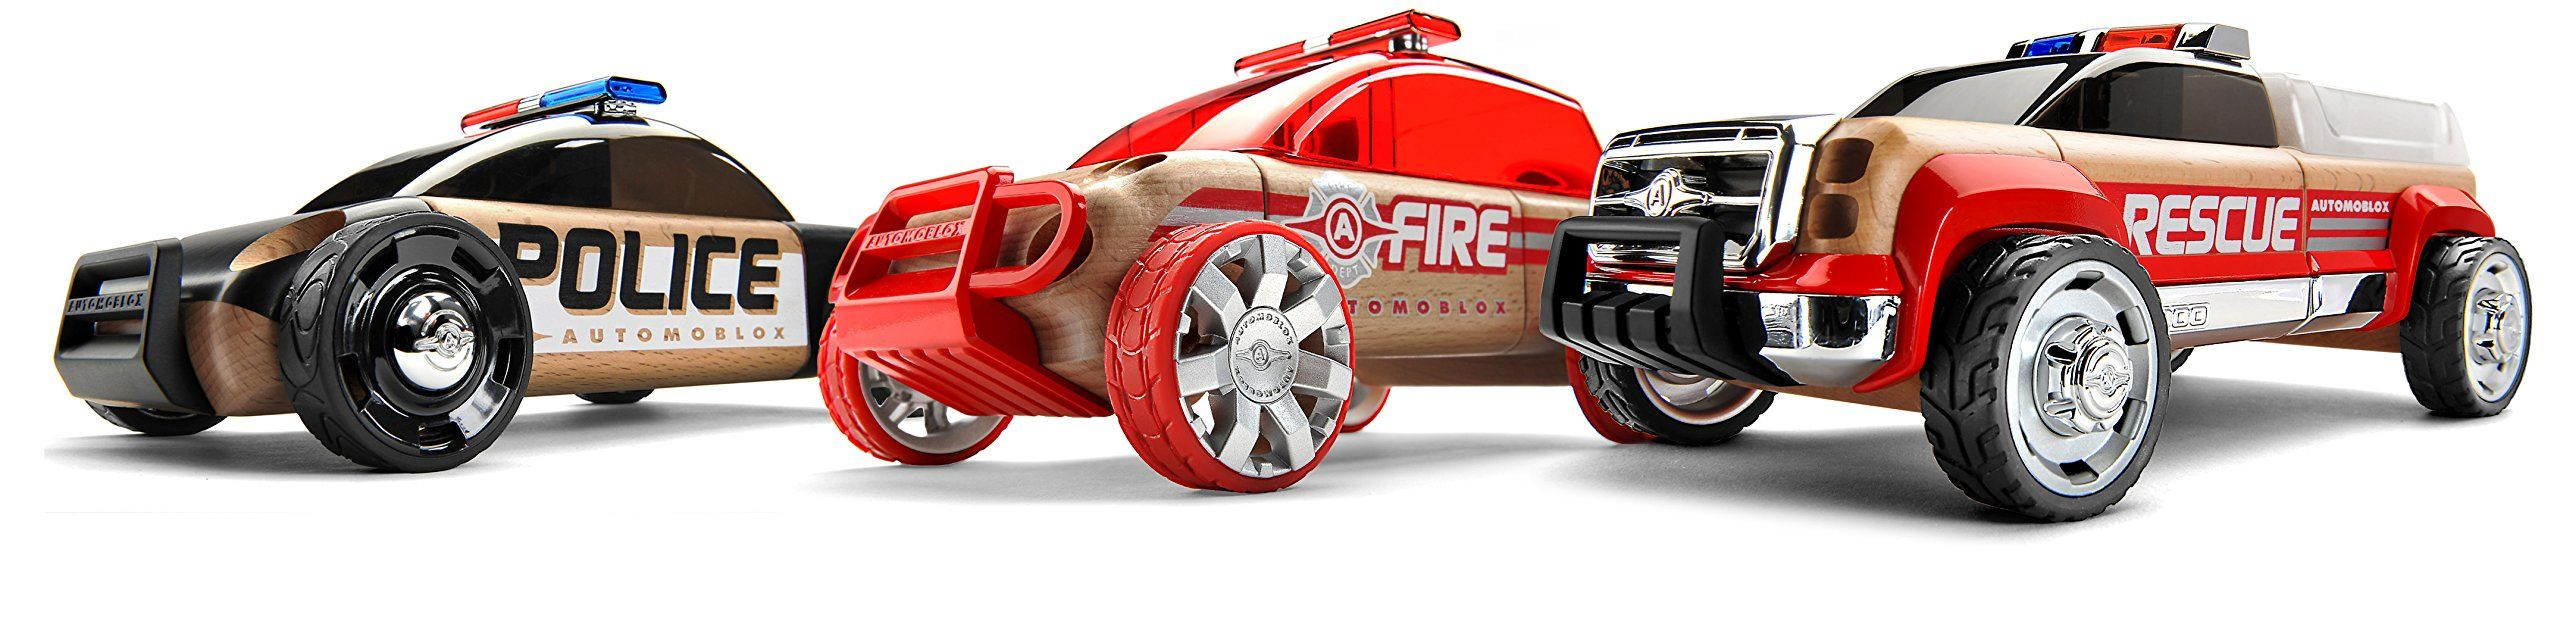 Toys cars 3  Automoblox Mini Rescue Pack  Toy  Pinterest